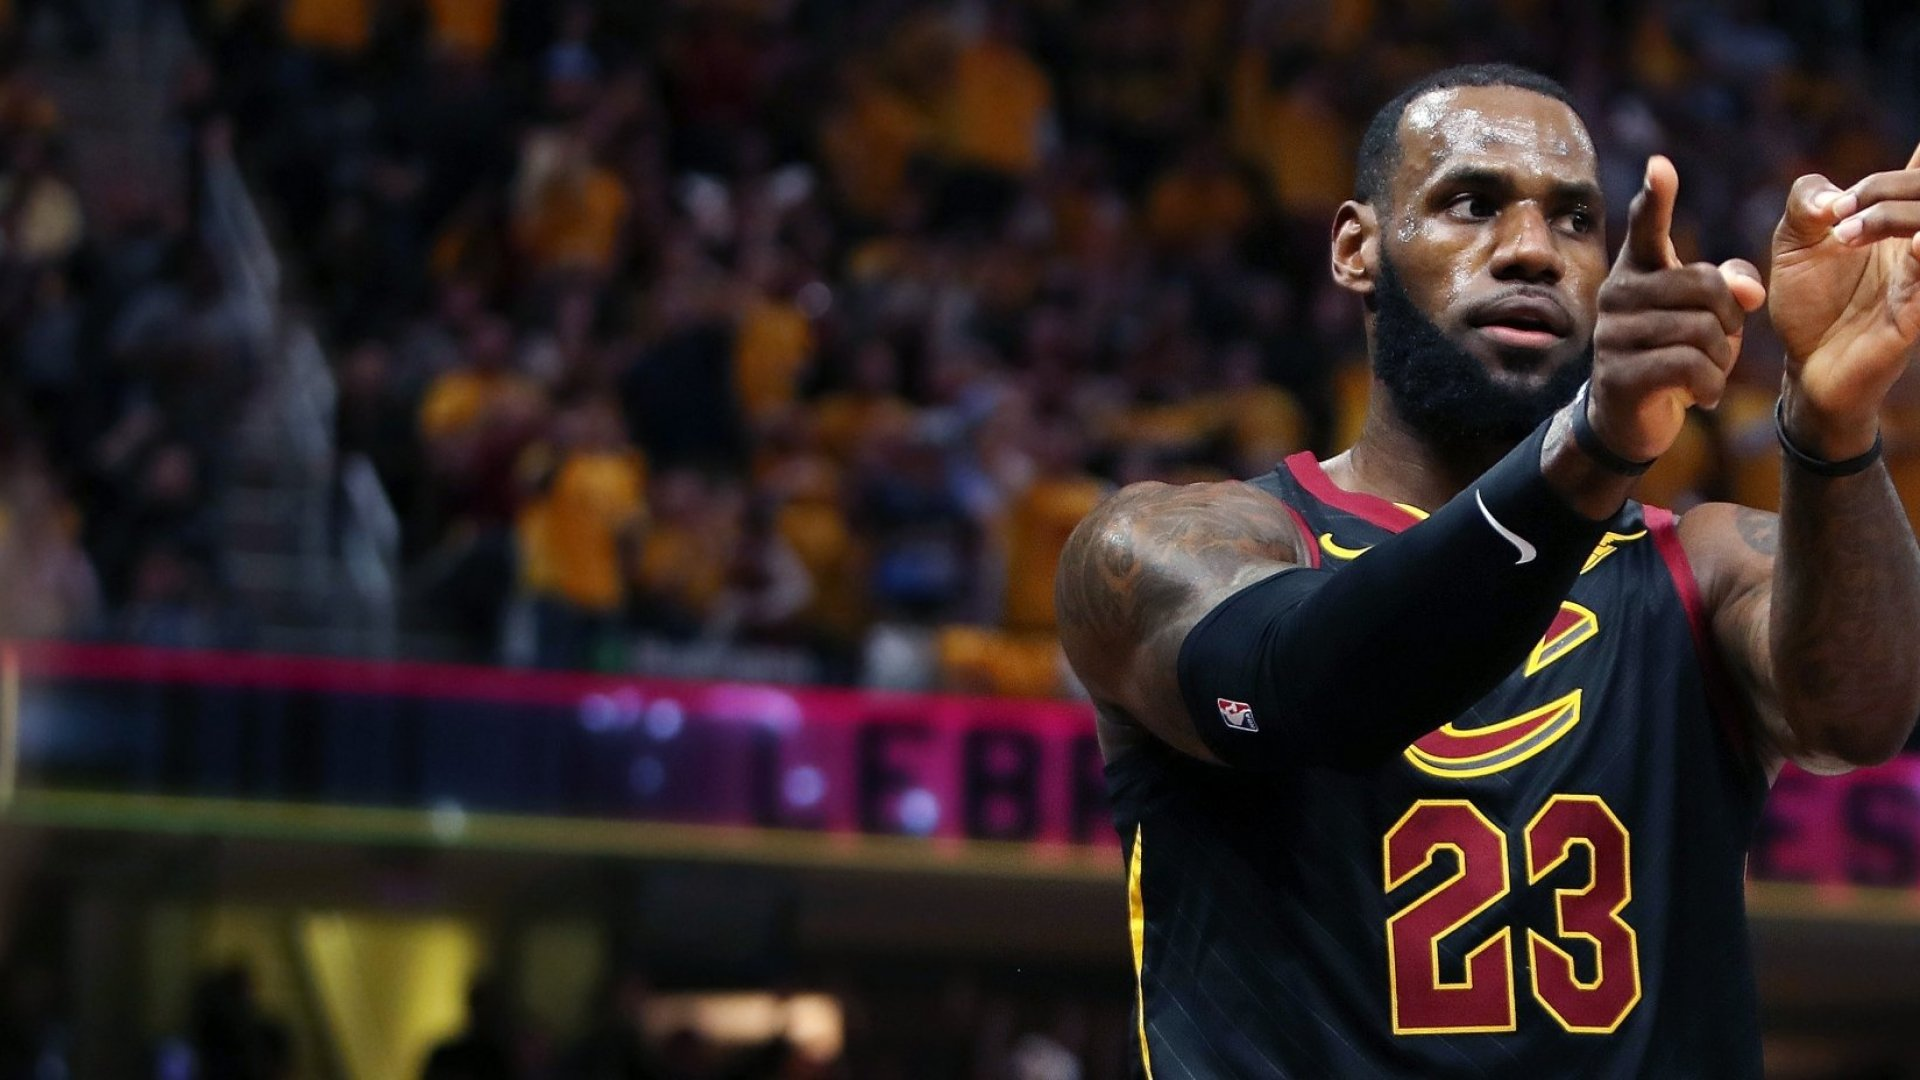 By Doing Something Few Expected, NBA Superstar LeBron James Showed What It Takes to Be a Peak Performer